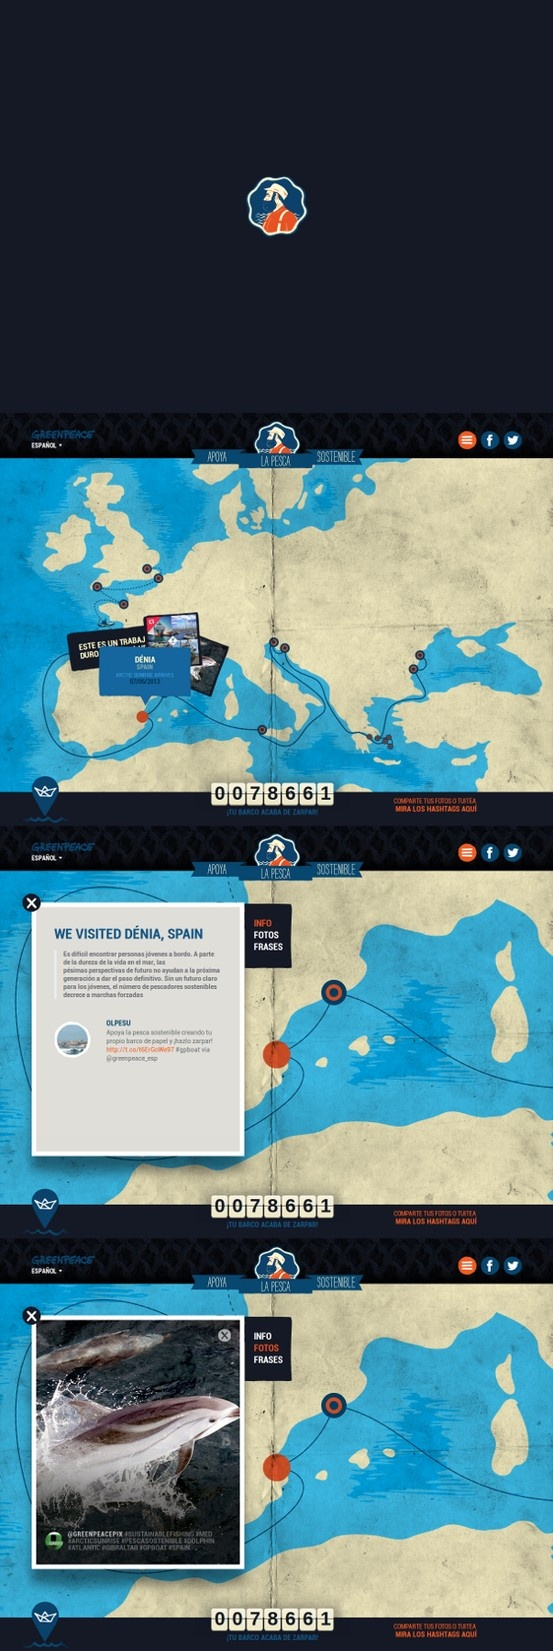 Myboat - Greenpeace 25 May 2013 http://www.awwwards.com/web-design-awards/myboat-greenpeace #webdesign #inspiration #UI #Illustration #CSS3 #Animation #HTML5 #Design #Yellow #Blue #Orange